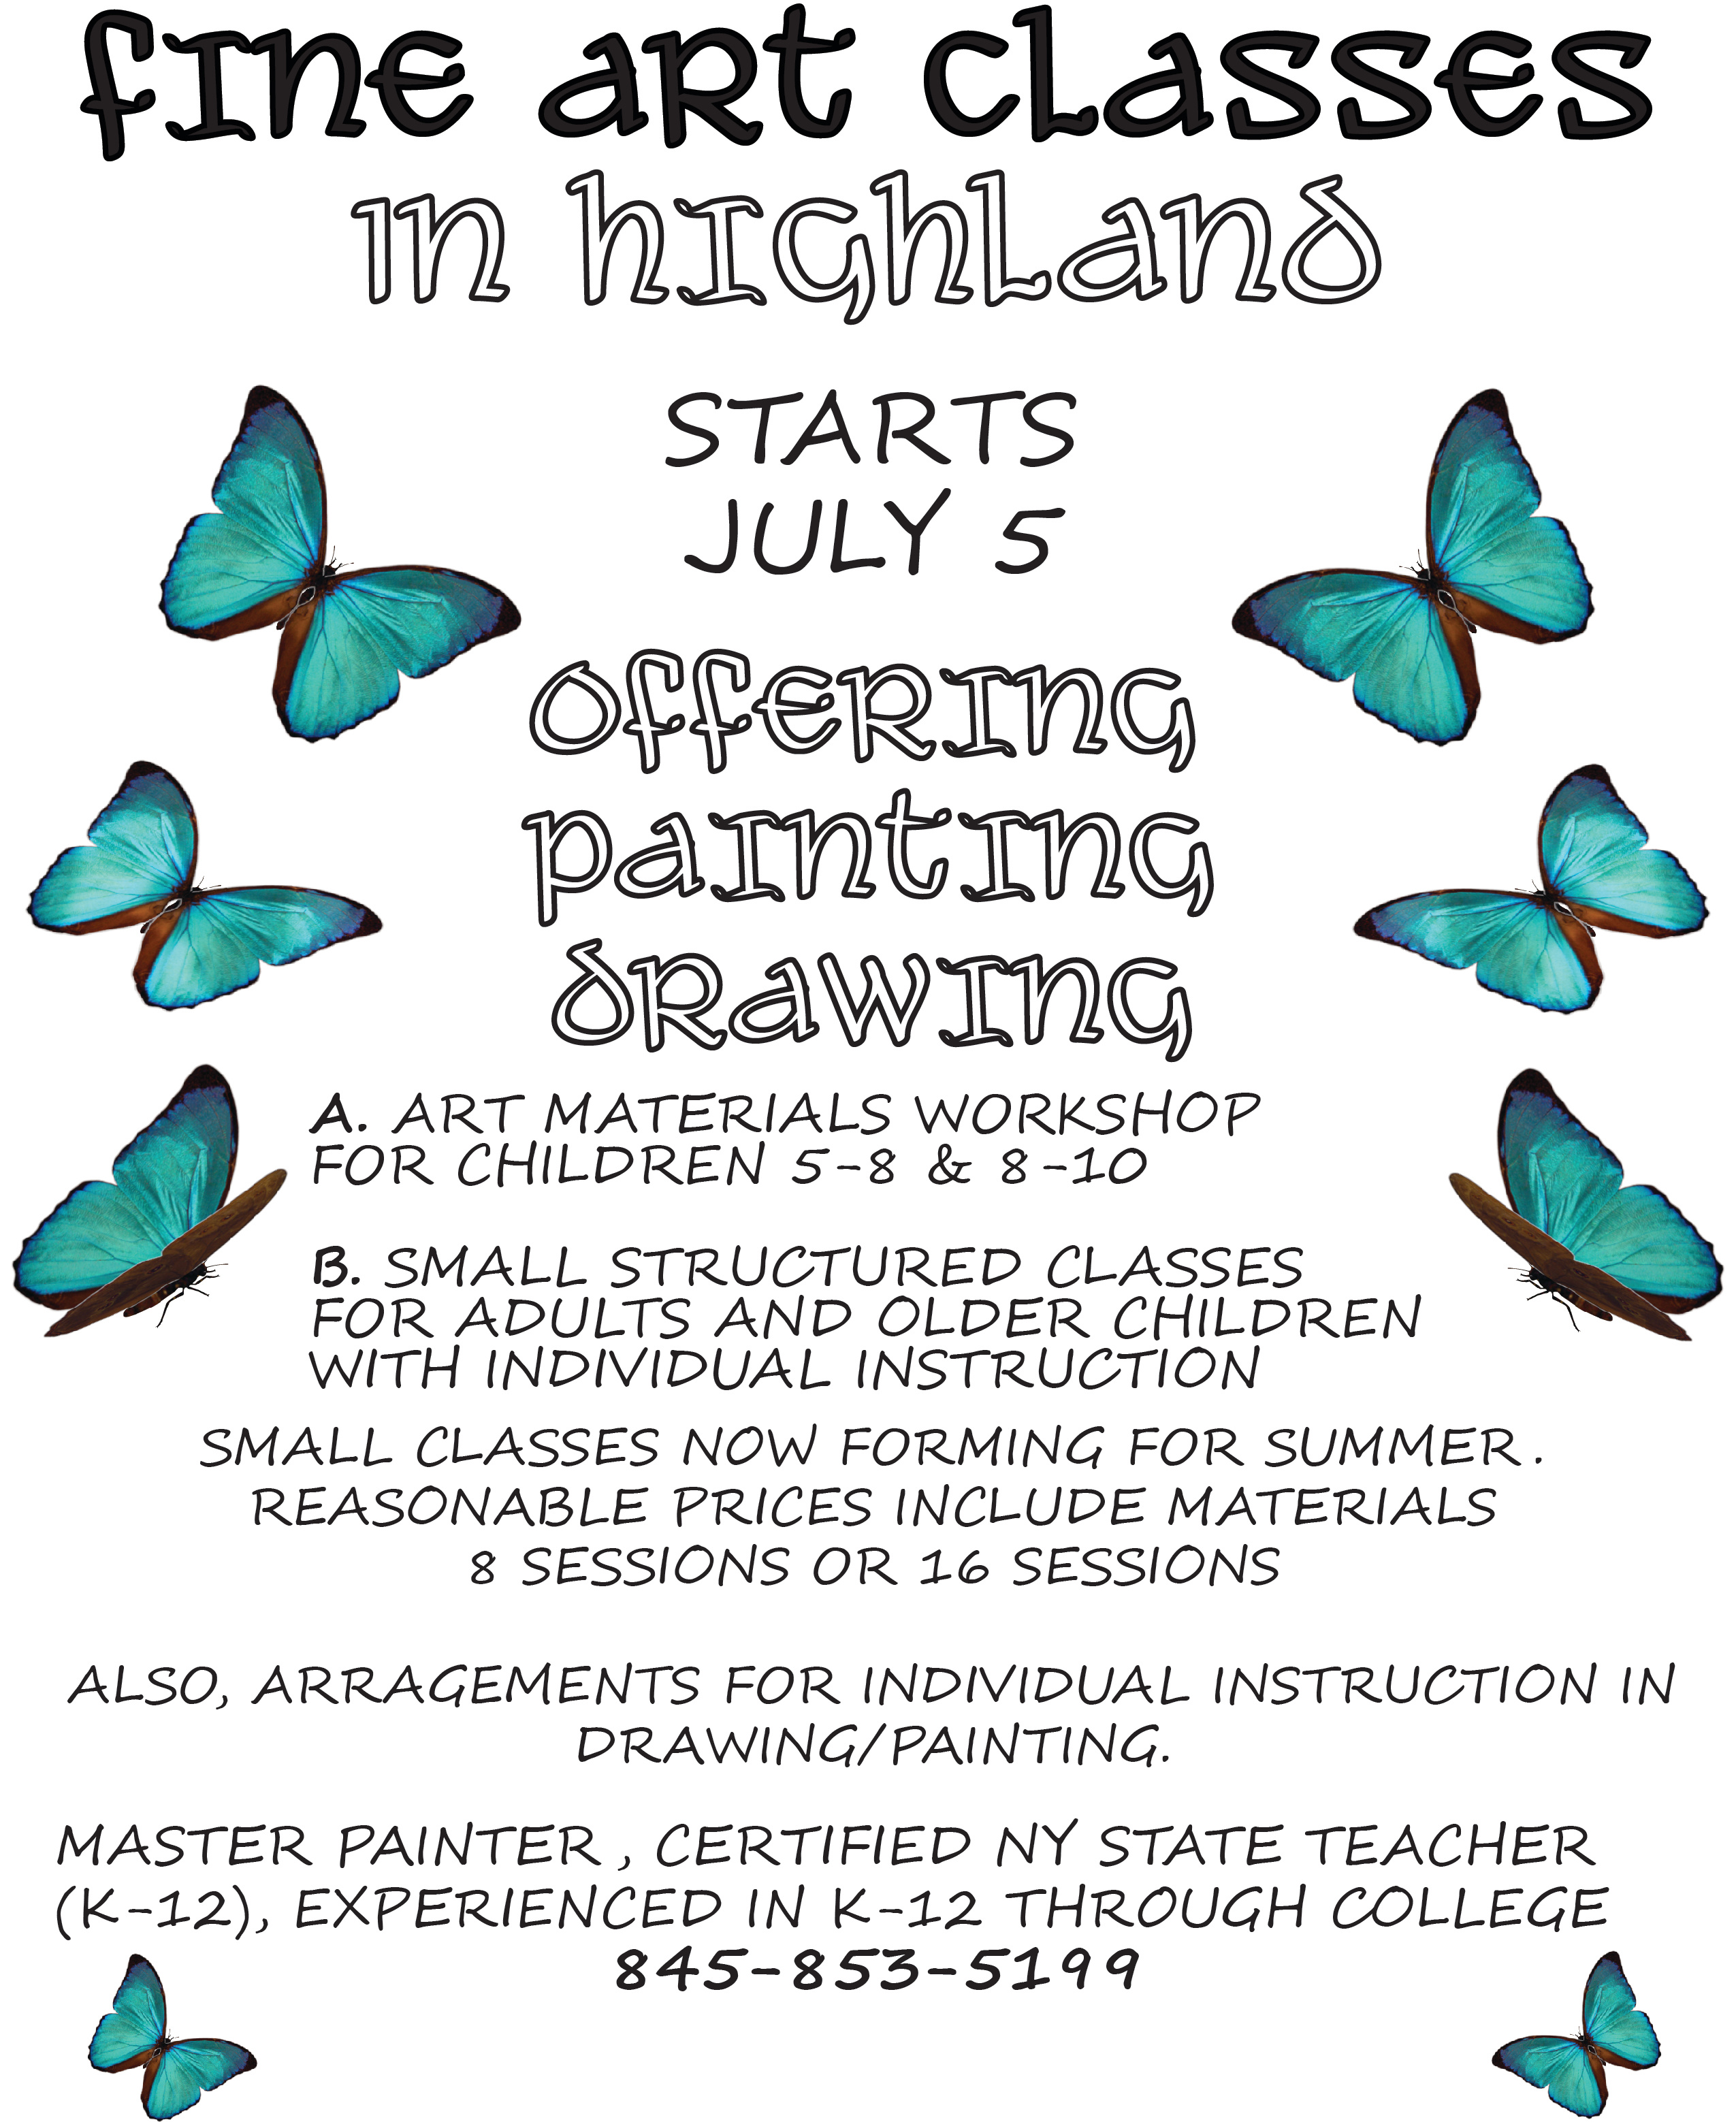 Flyer designed to advertise summer workshop